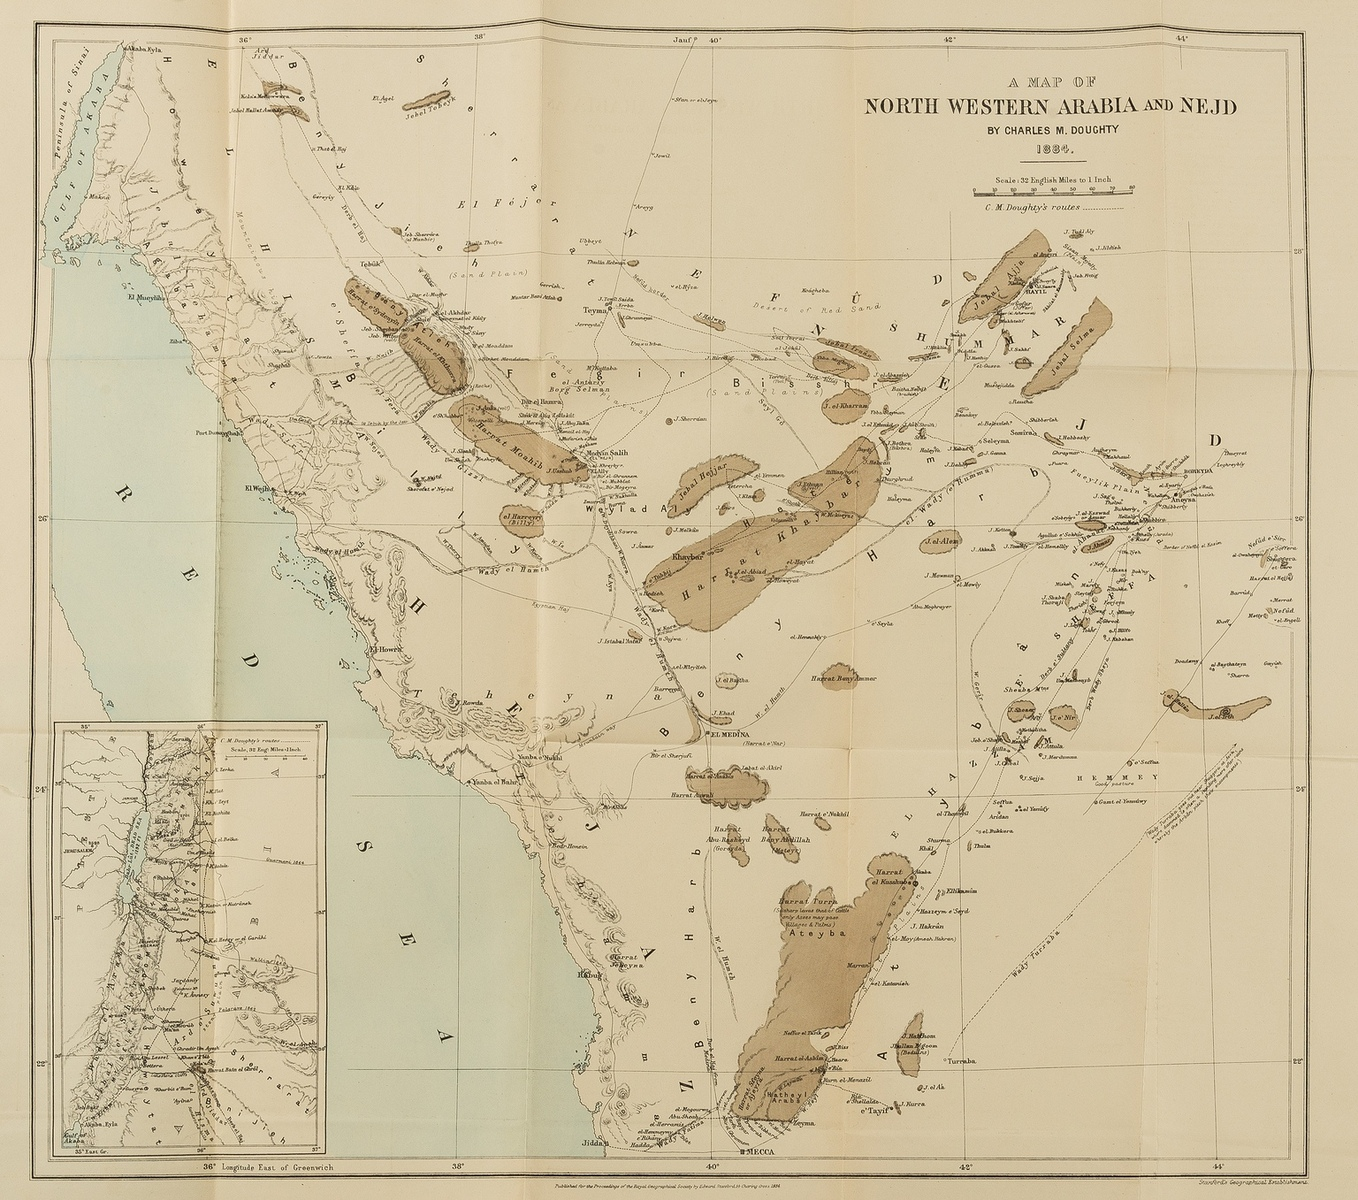 Middle East.- Doughty (Charles M.) A Map of North Western Arabia and Negd, 1884.